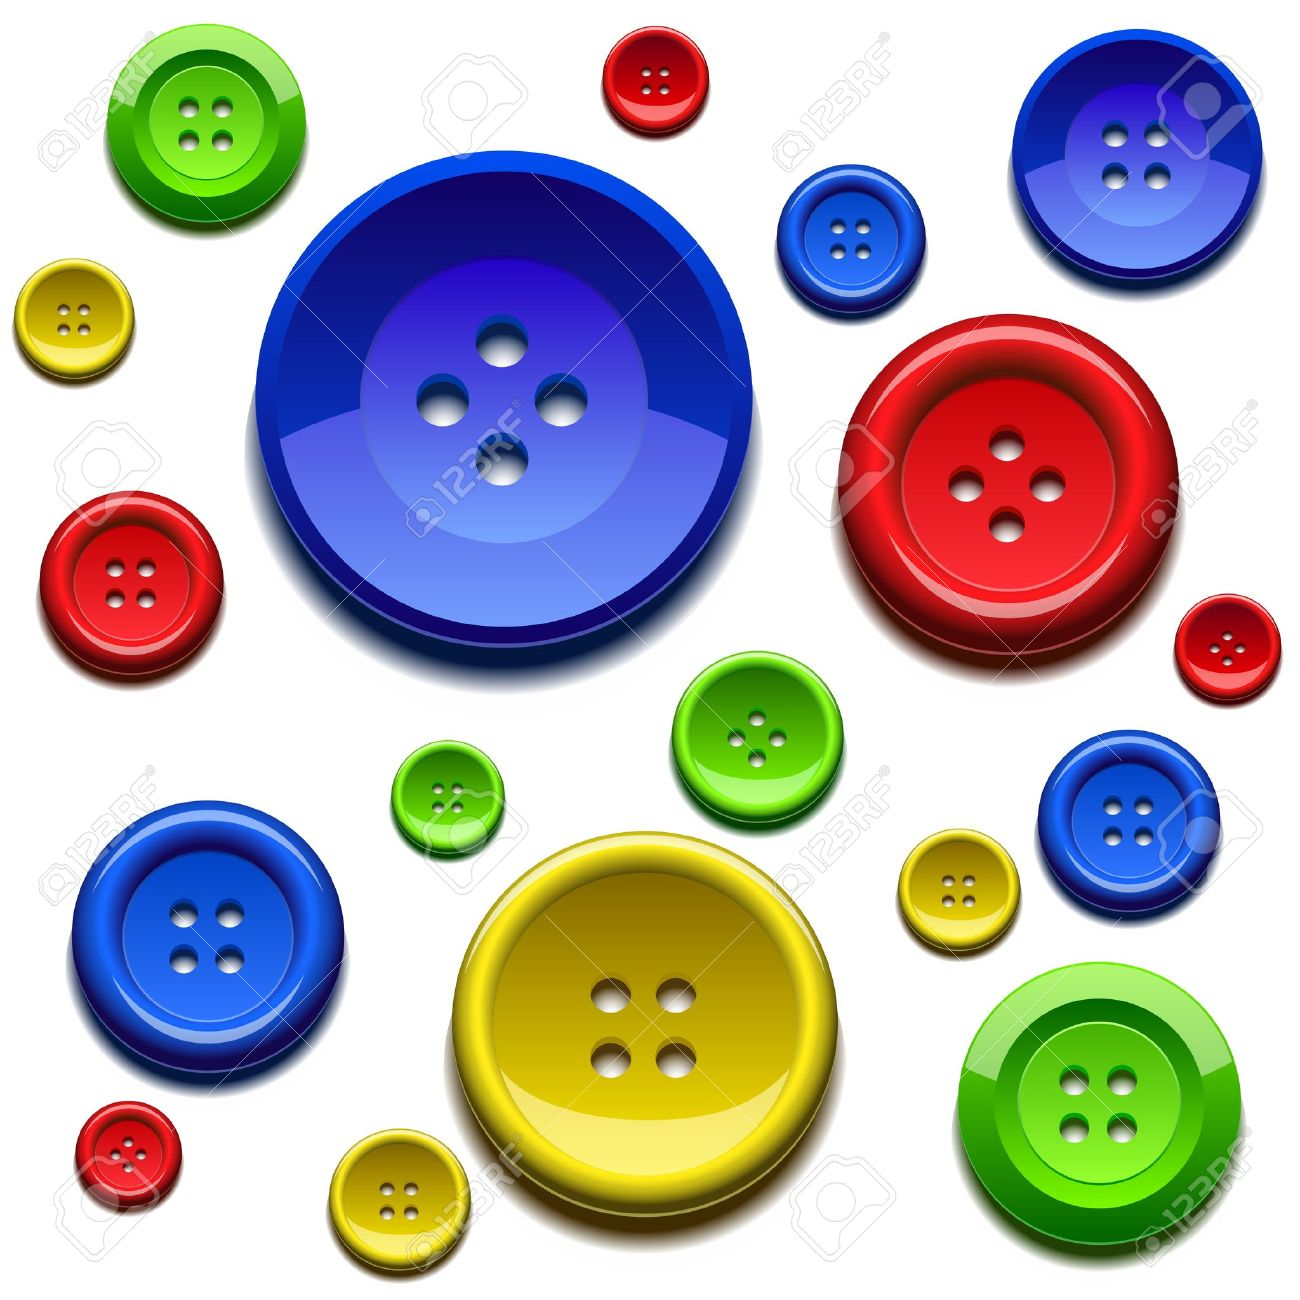 Clothing buttons clip art.